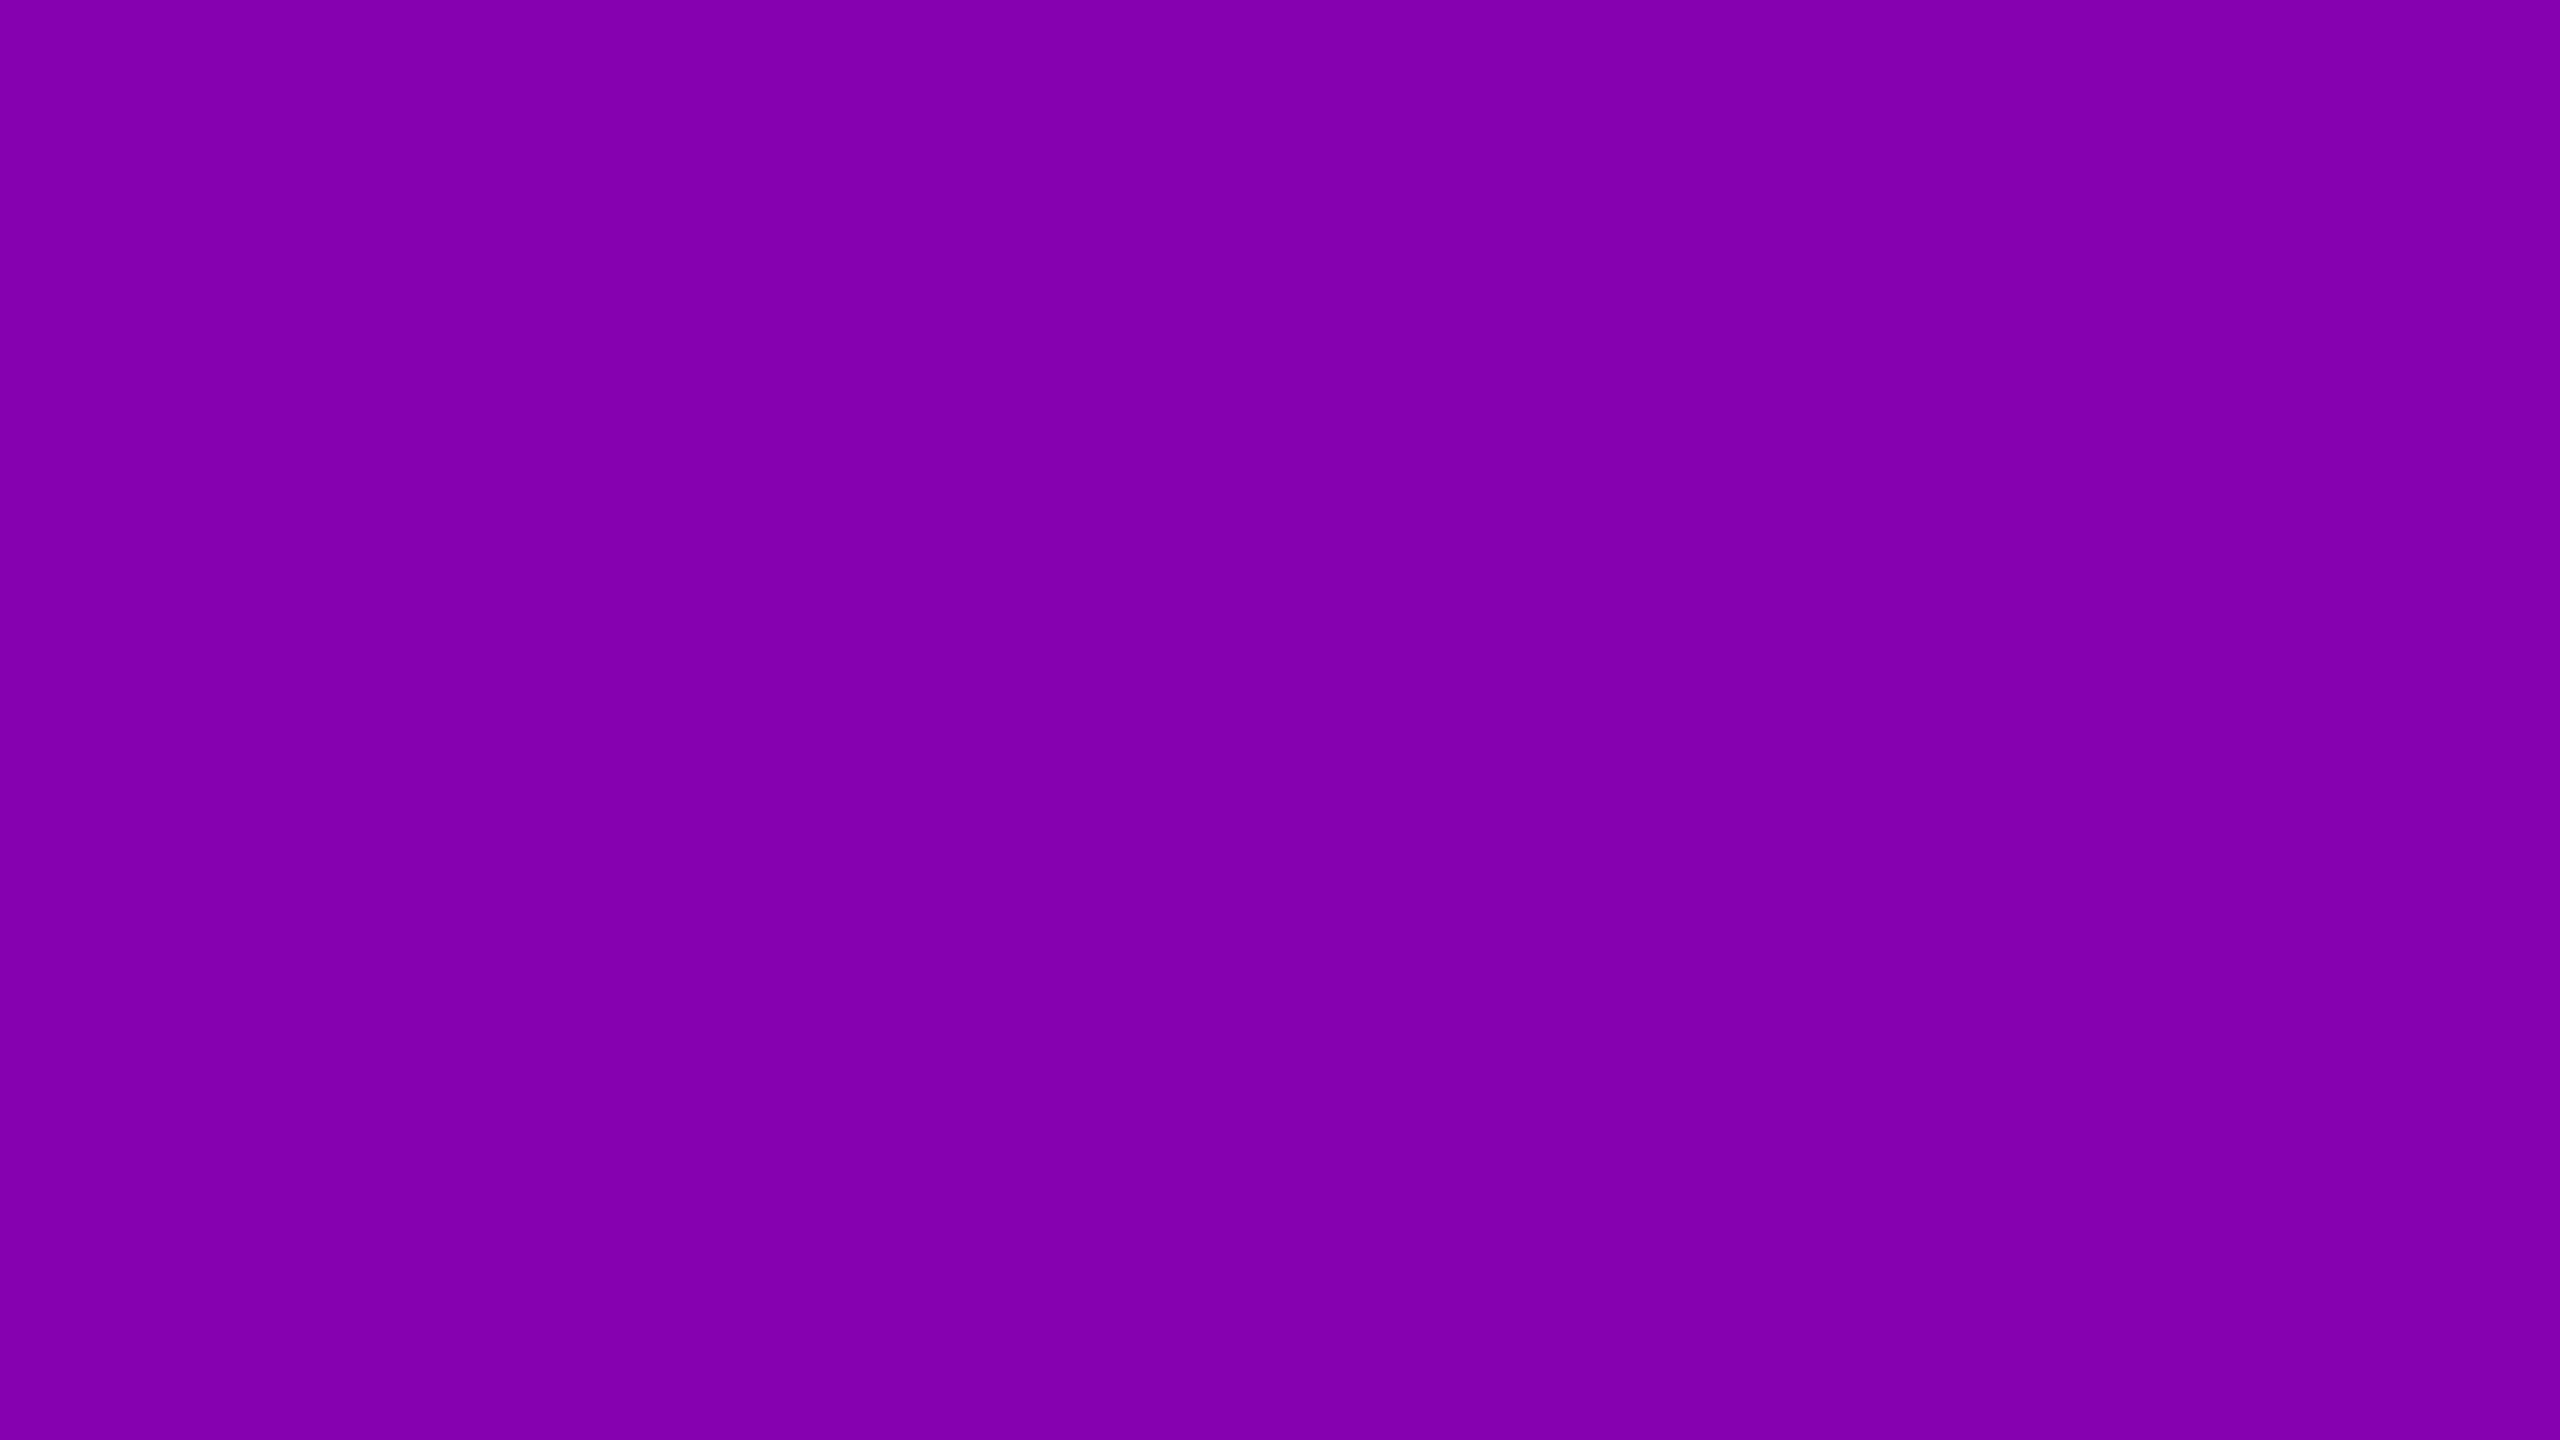 2560x1440 Violet RYB Solid Color Background